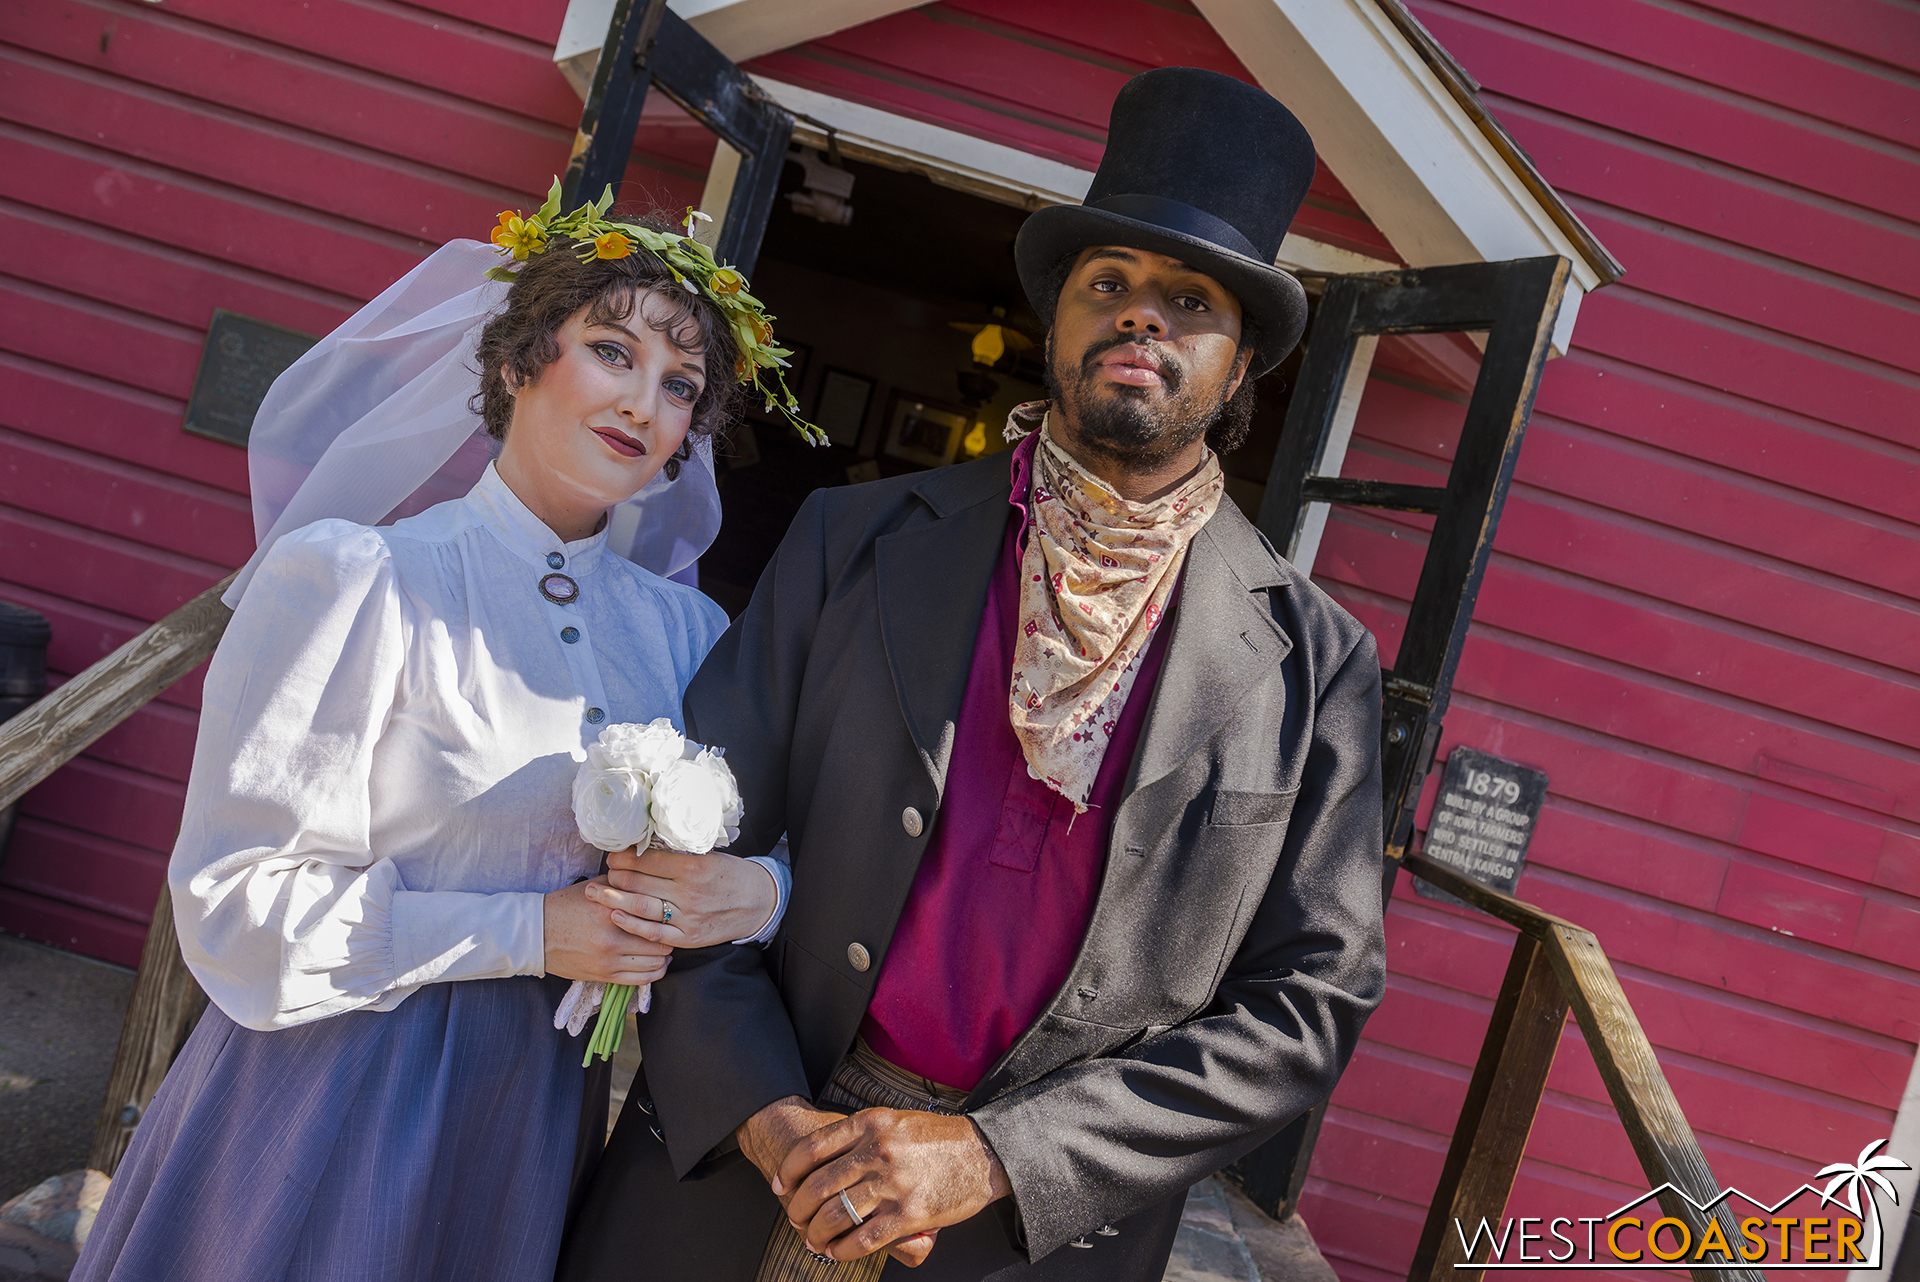 A charming wedding in front of the Schoolhouse between Maggie and town Dr. Dillard Marsh.